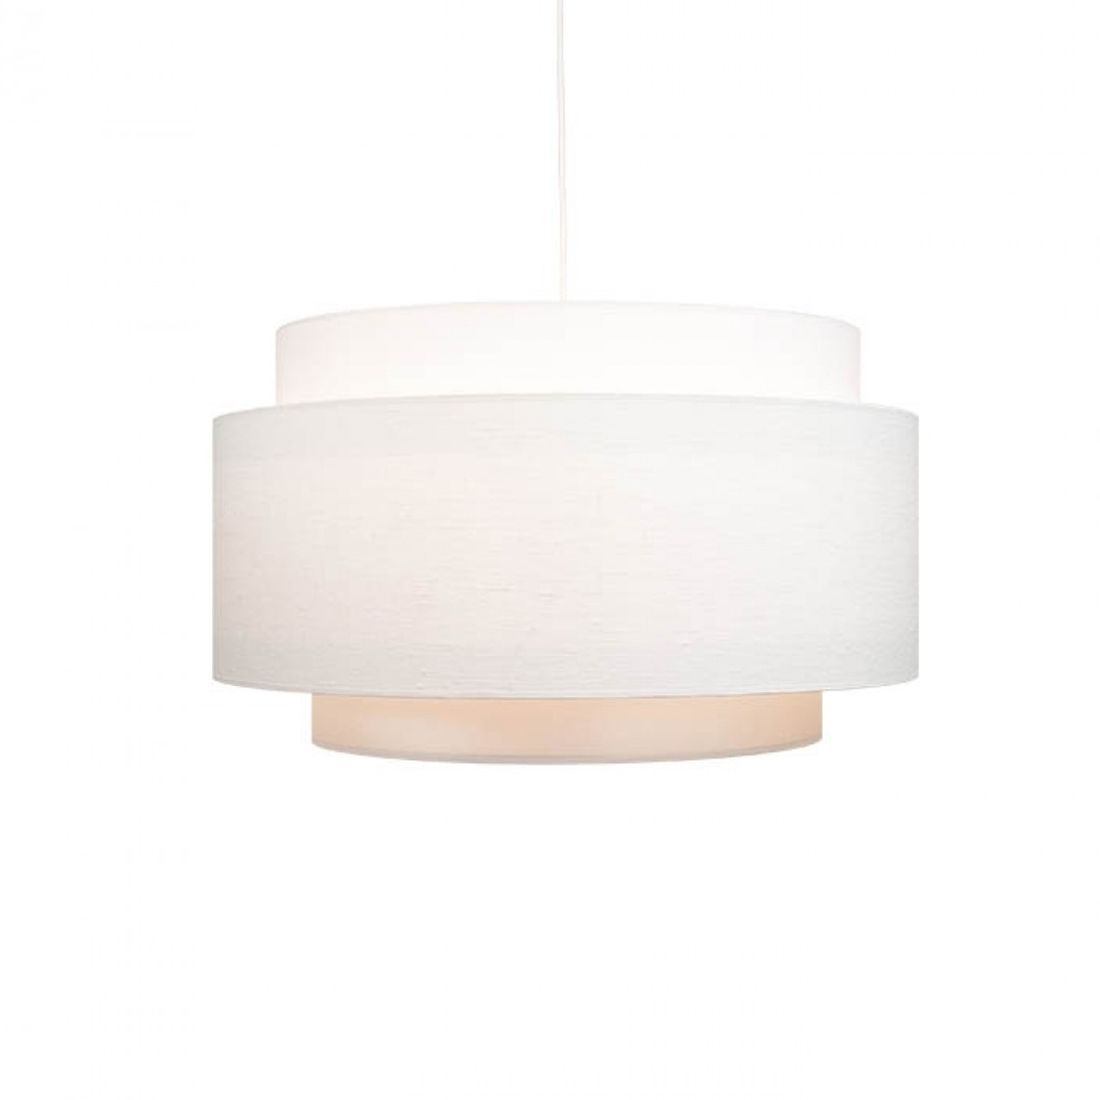 Halo hanglamp Piet Boon wit